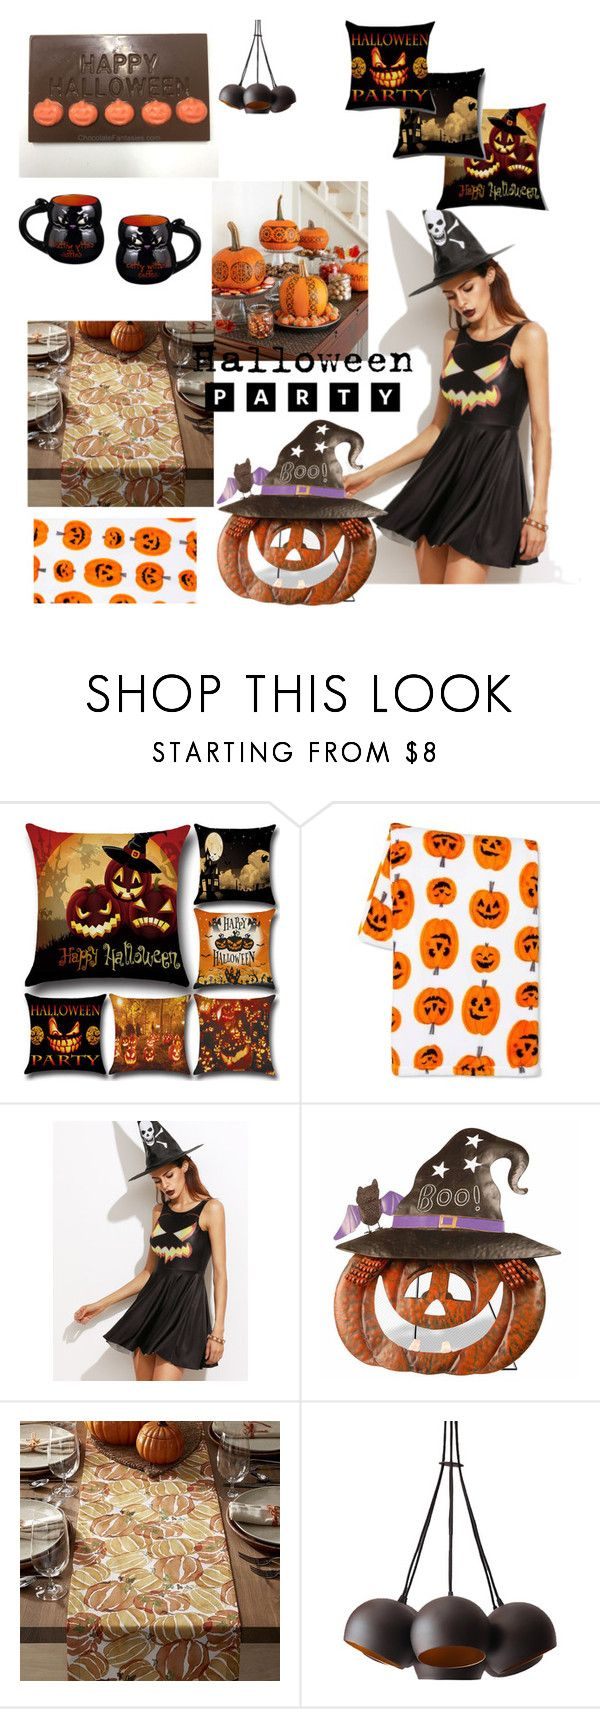 """""""Halloween"""" by amiraahmetovic ❤ liked on Polyvore featuring interior, interiors, interior design, home, home decor, interior decorating, Crate and Barrel, Grasslands Road and Halloweenparty"""